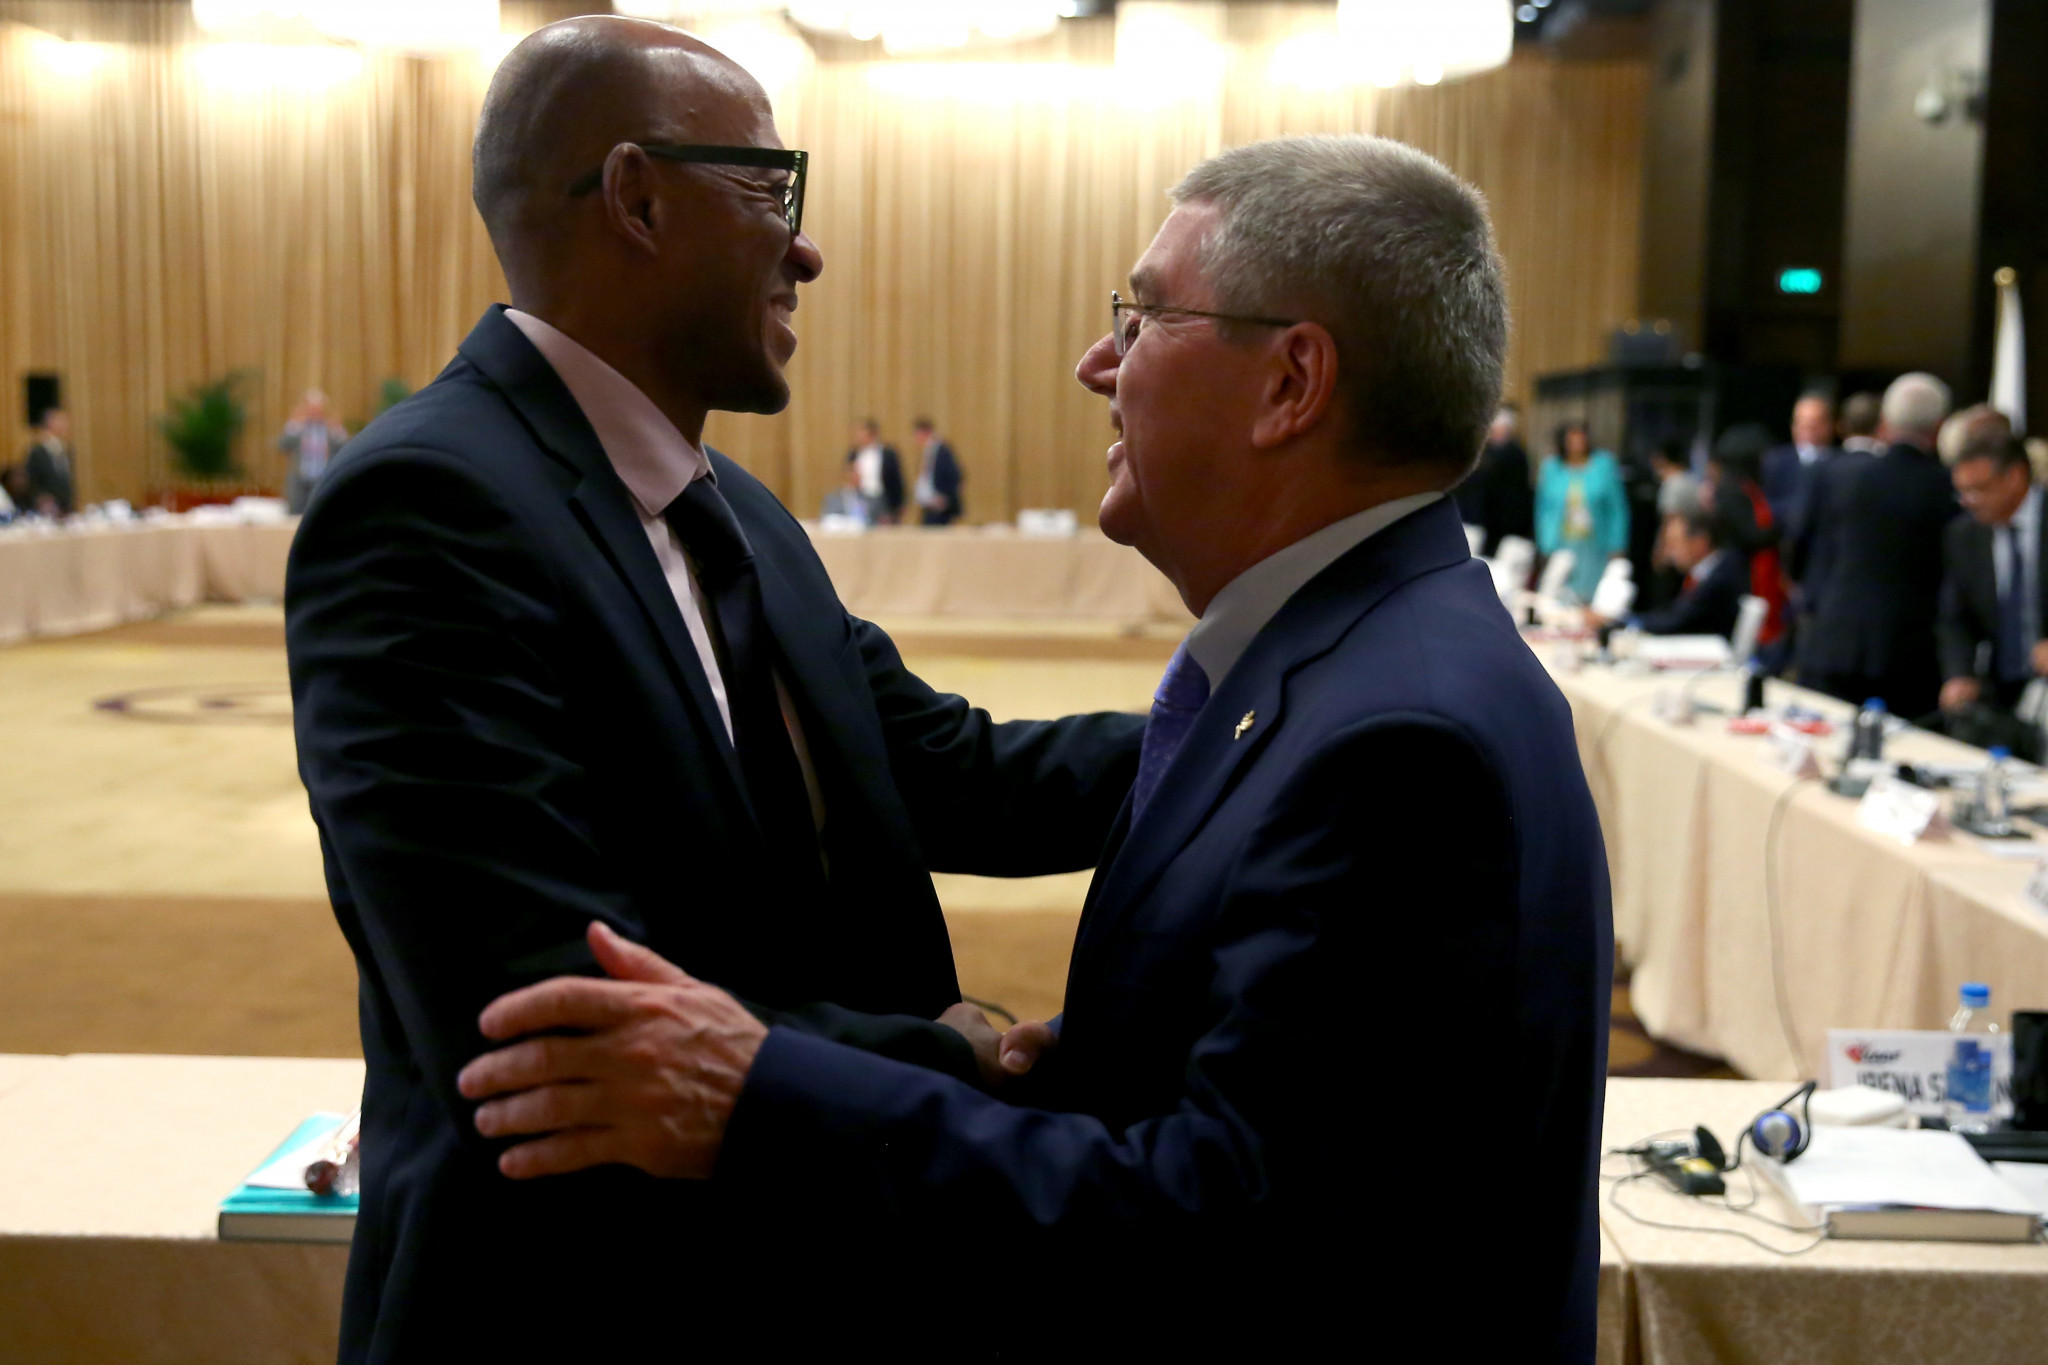 Frankie Fredericks, left, had been appointed to head the IOC Evaluation Commission for the 2024 Olympics by Thomas Bach, right, but was forced to step down after being accused of accepting bribes ©Getty Images